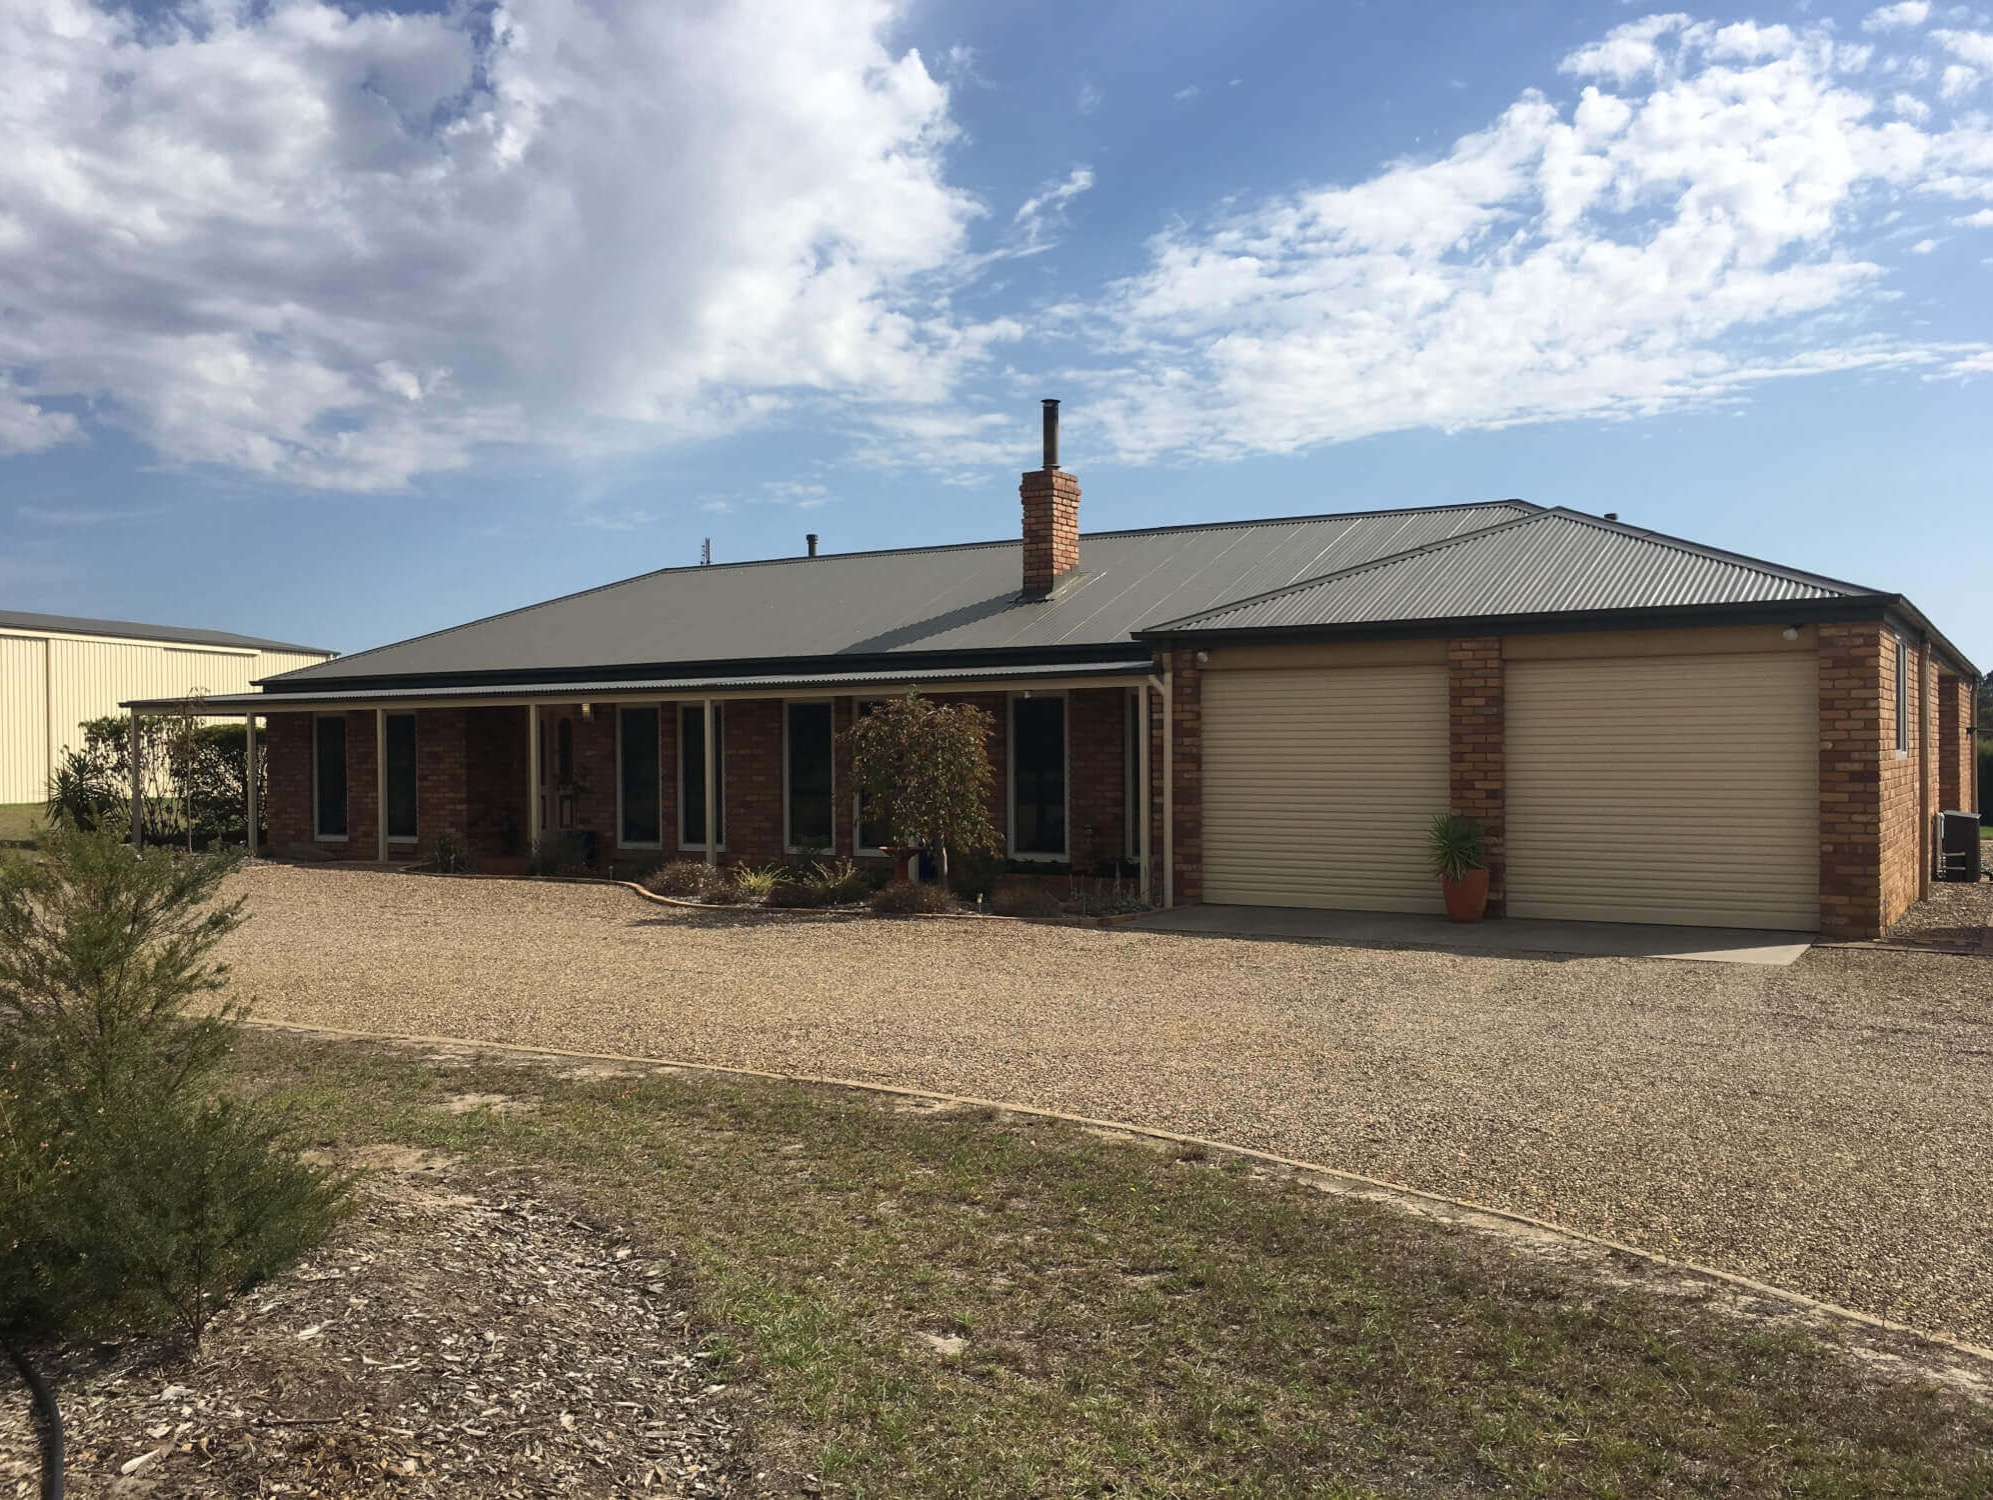 33 Boundary Creek Longford VIC 3851